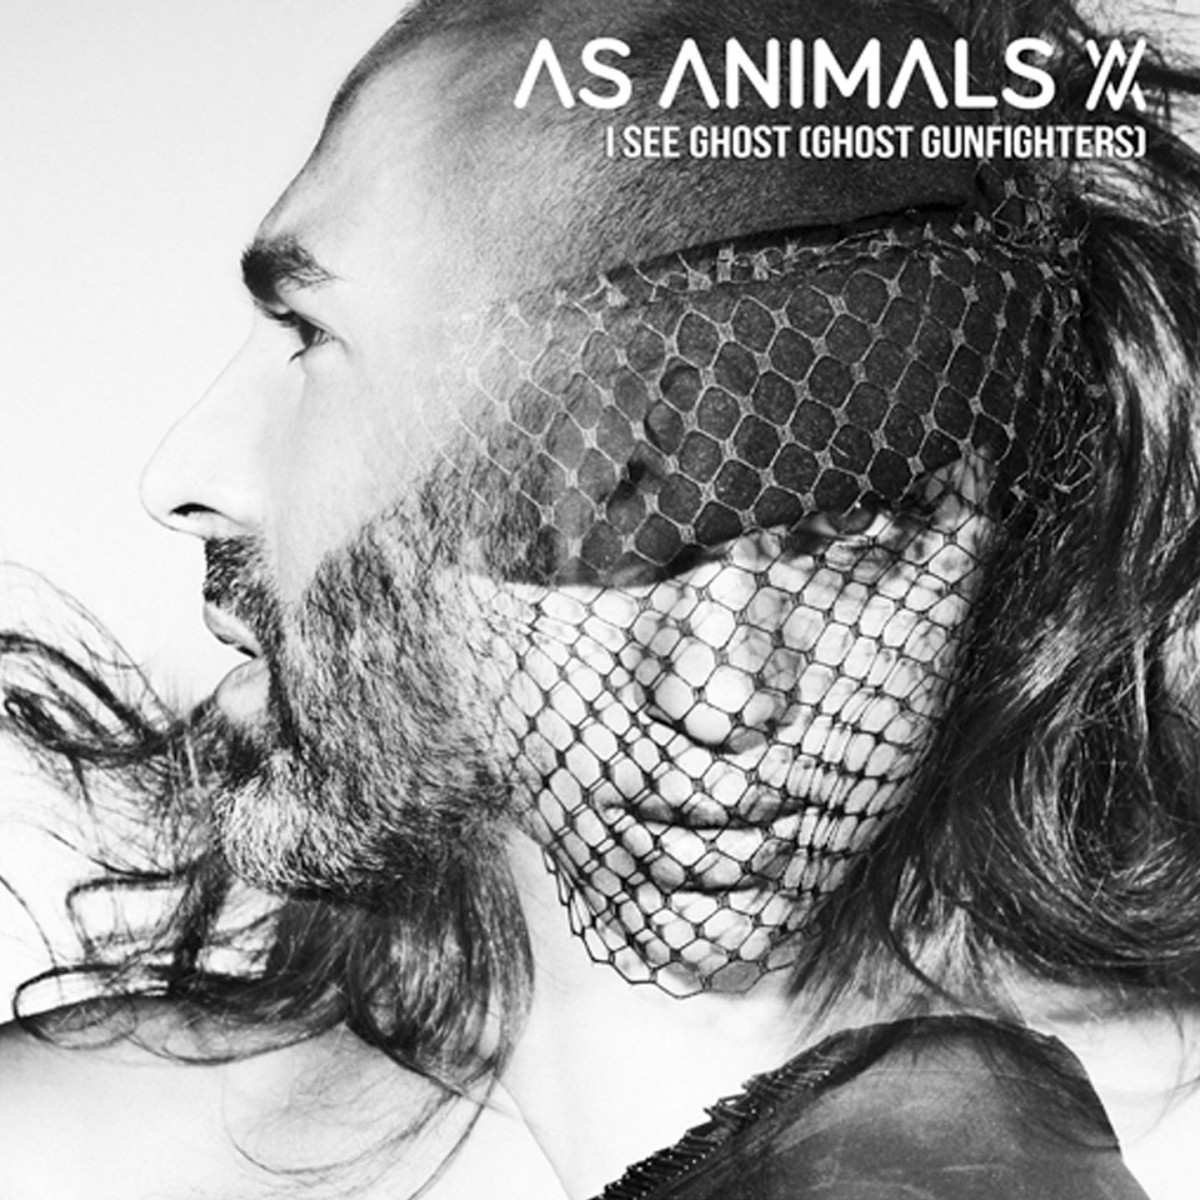 AS ANIMALS - I SEE GHOST (GHOST GUNFIGHTERS)